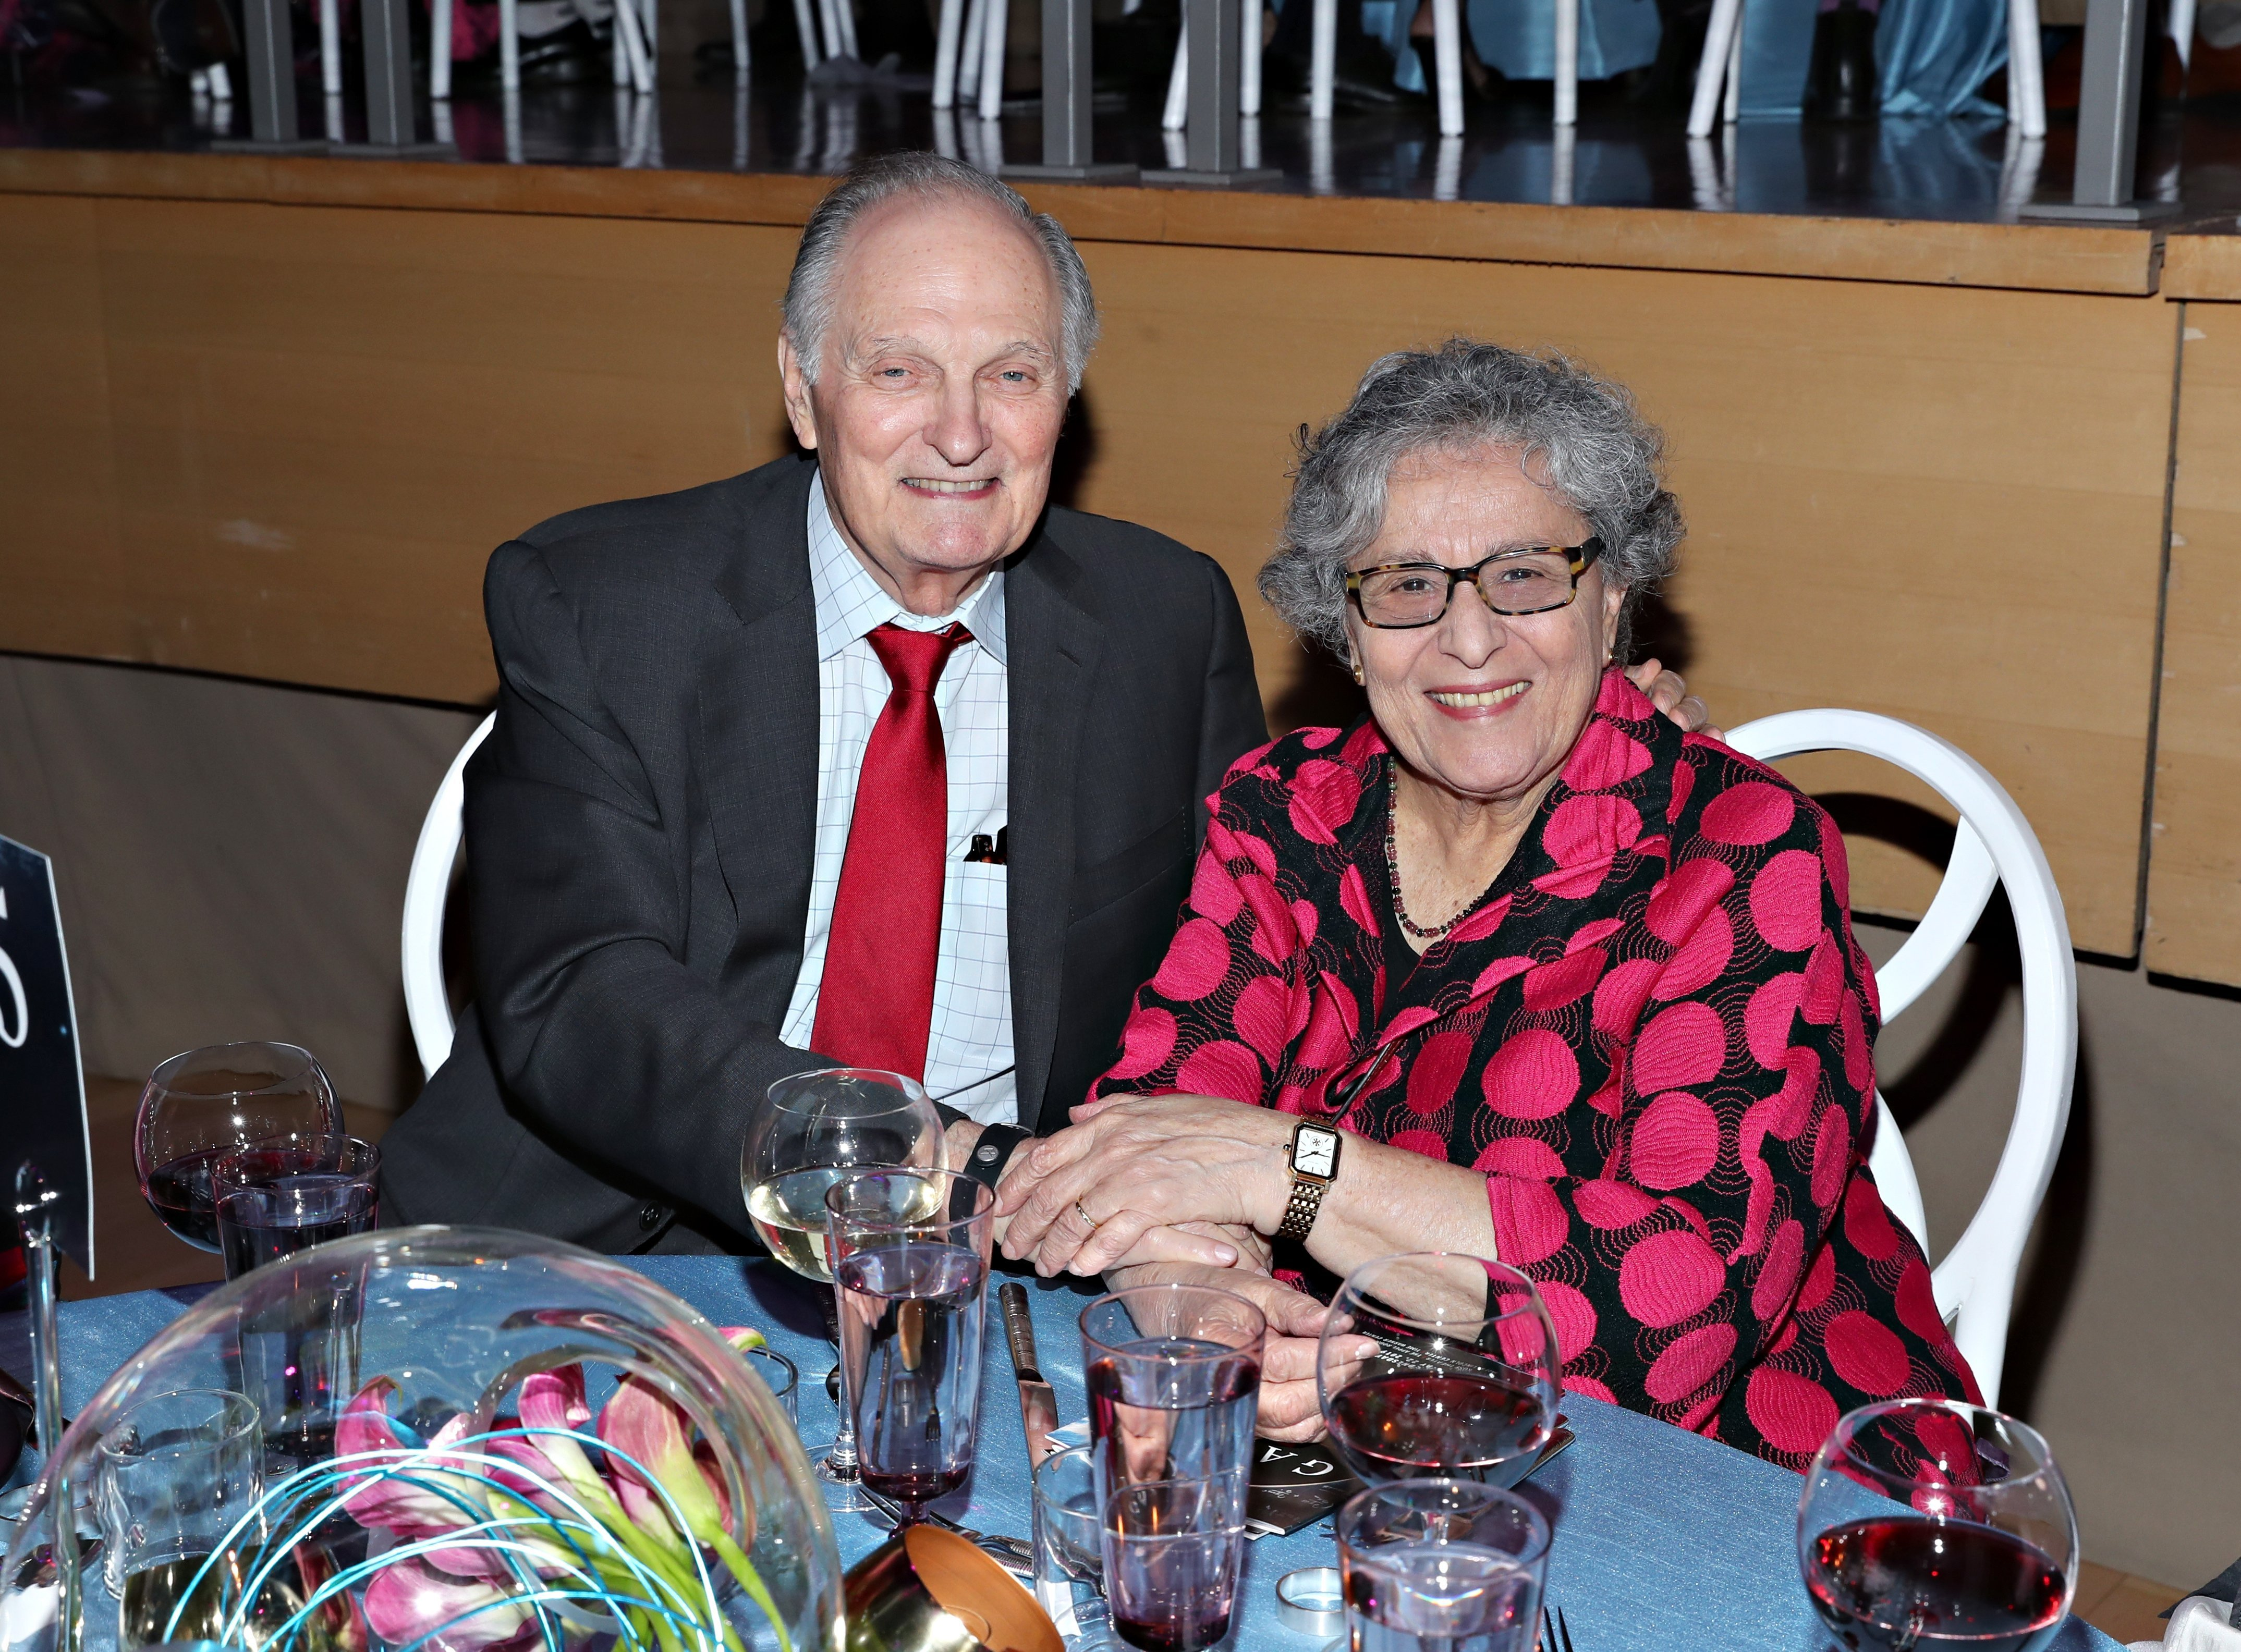 Alan Alda and wife Arlene Alda attend the World Science Festival's 12th Annual Gala at Jazz at Lincoln Center on May 22, 2019 | Photo: GettyImages